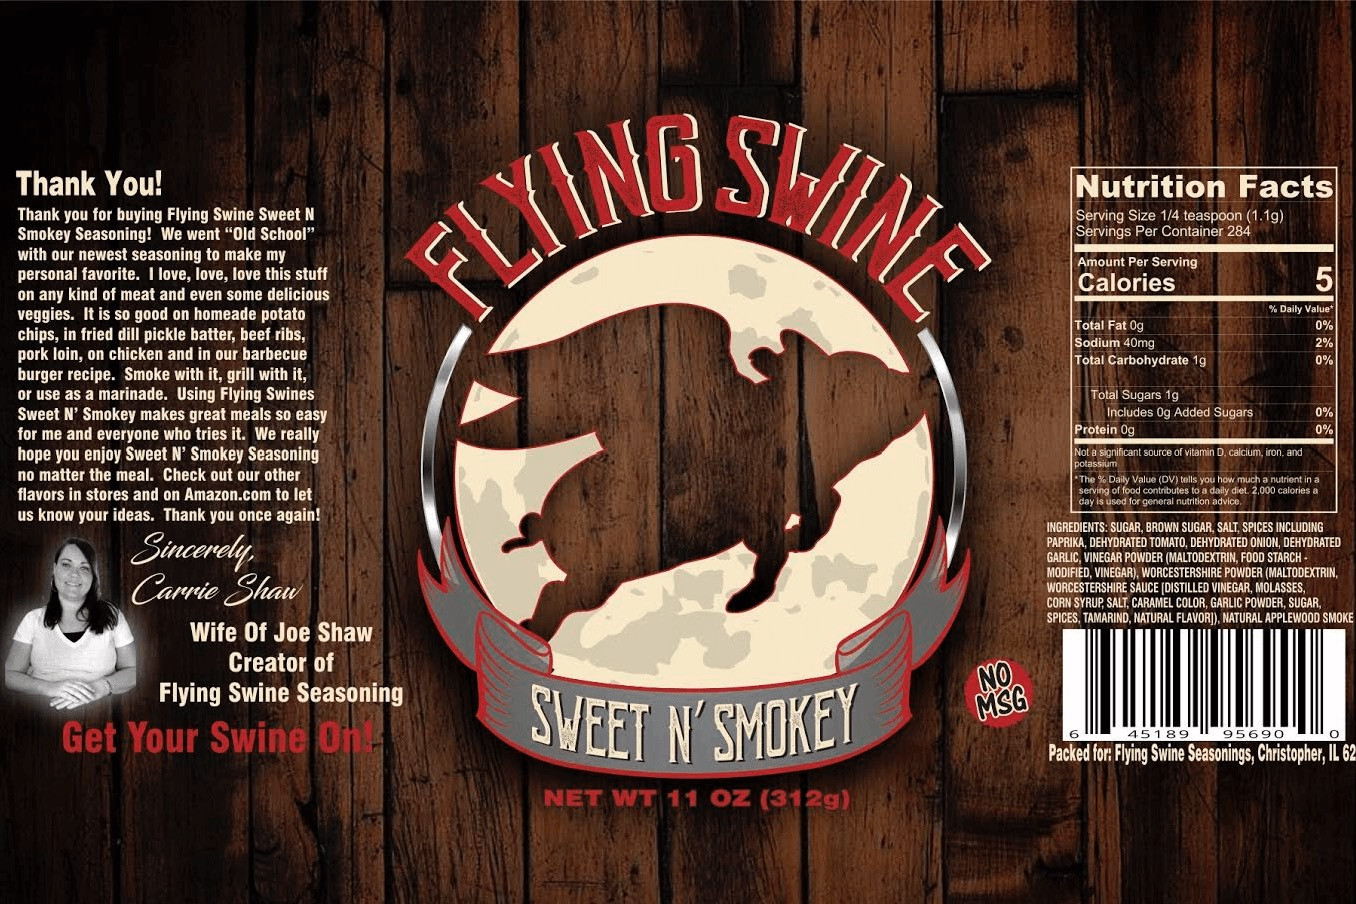 Flying Swine Sweet N' Smokey